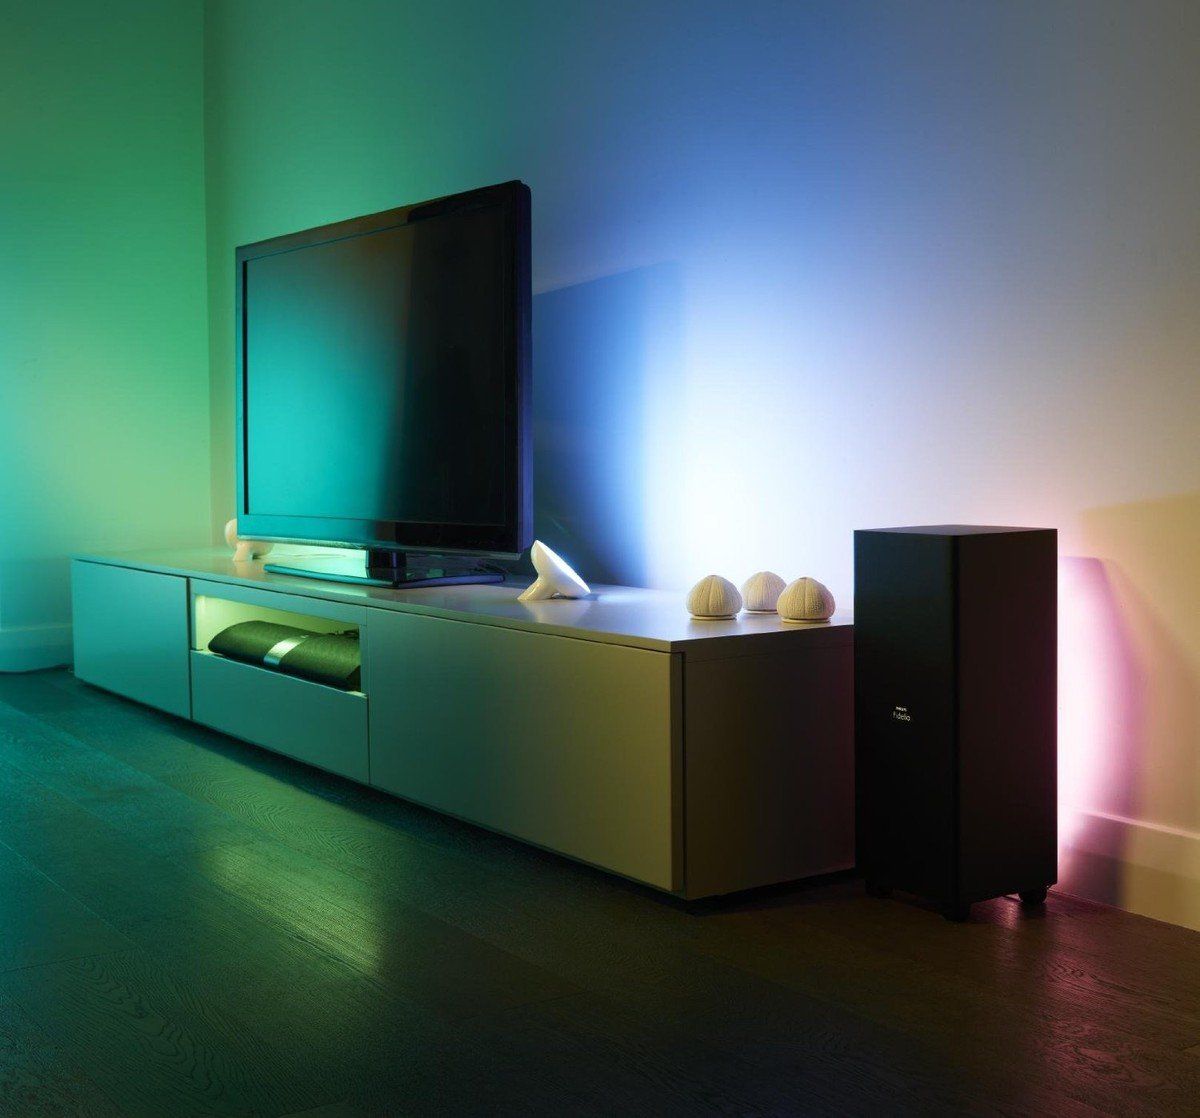 How To Control Your Philips Hue Lights When You Re Away